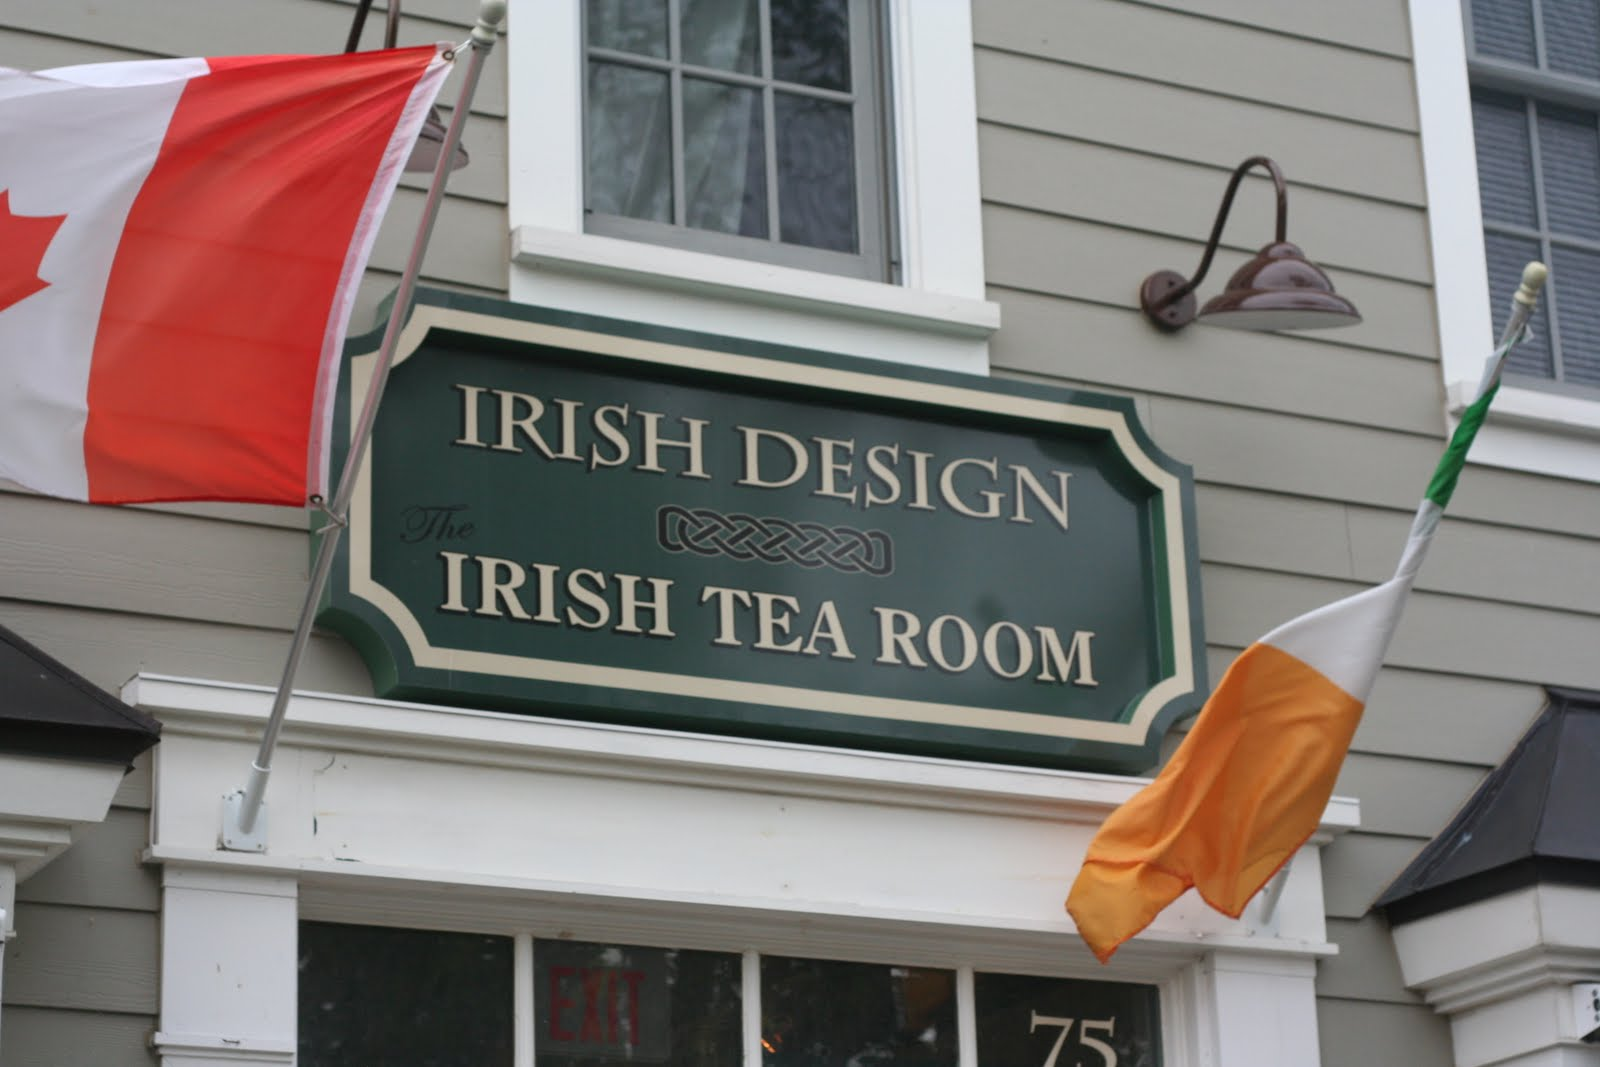 Irish Tea House Design on irish garden, irish balcony, irish chocolate, irish soup, irish fine dining, irish german, irish bath house, coffee house, irish buffet, spinning house, irish pub, irish waterfall, irish dome house, irish shed, dower house, irish asian, jasmine house, irish home, english cottage house,